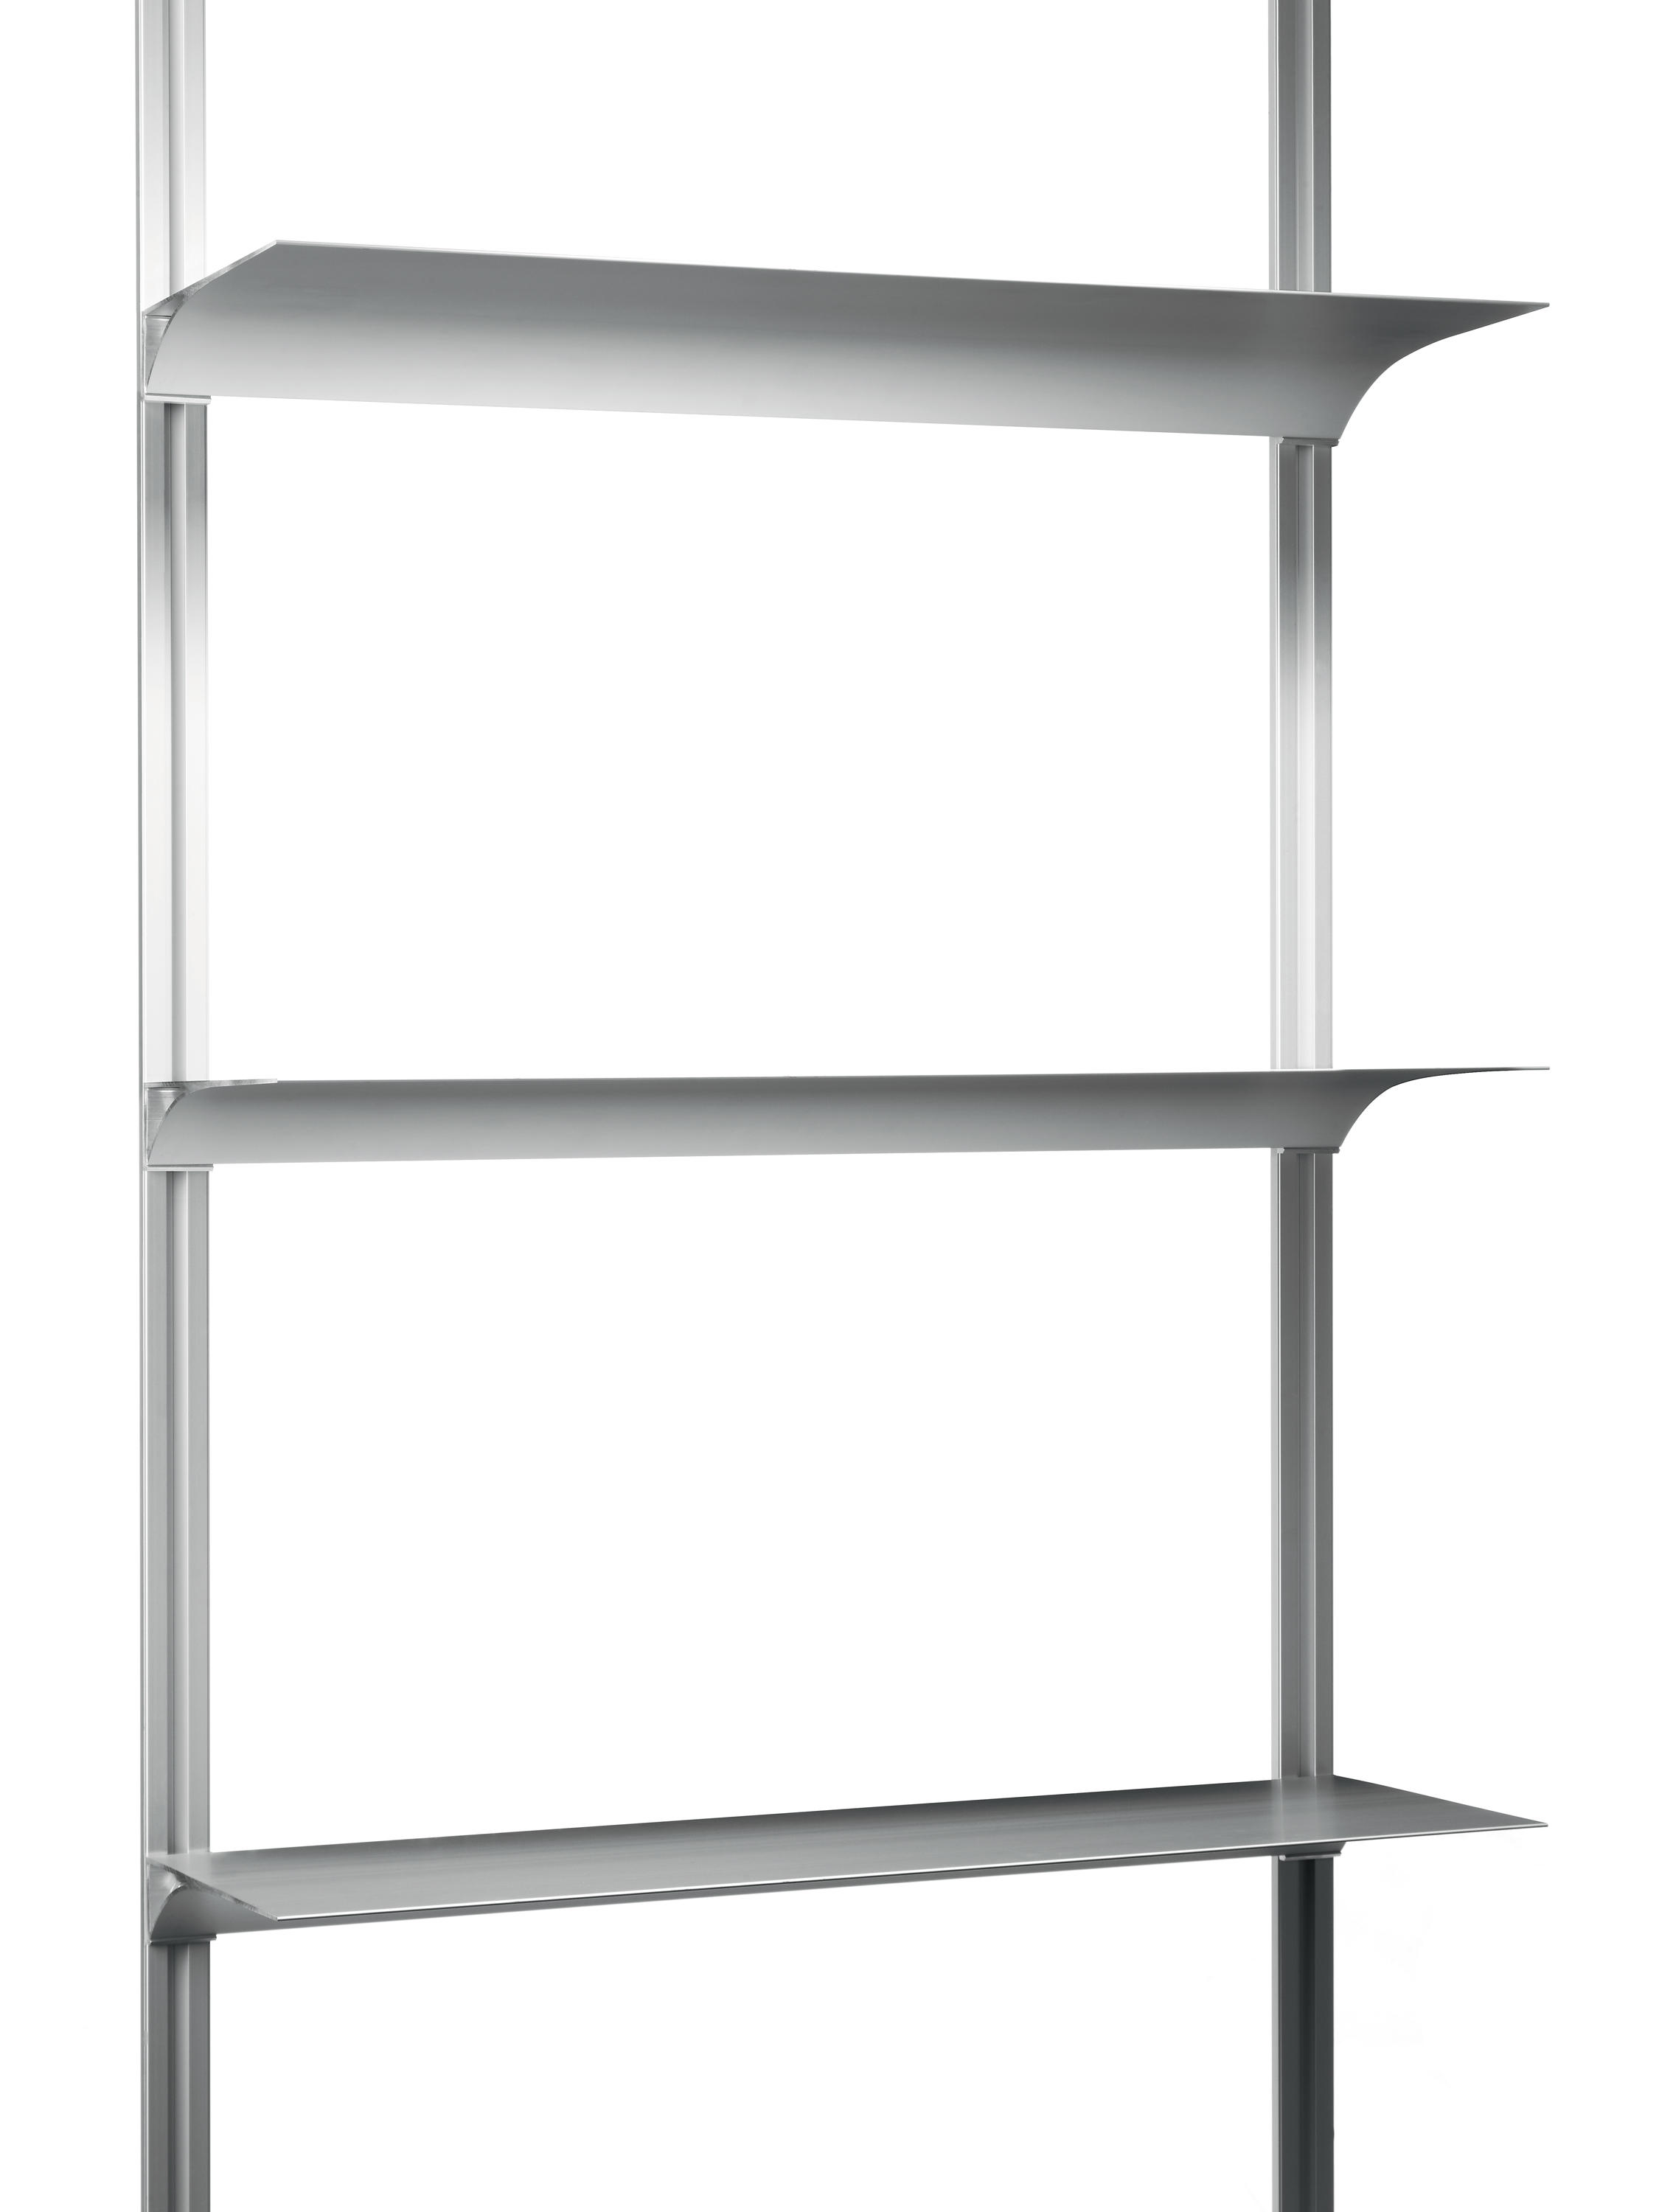 are mounts mounted mount ideas spaces great wall desk system small shelf that contemporist for this shelving